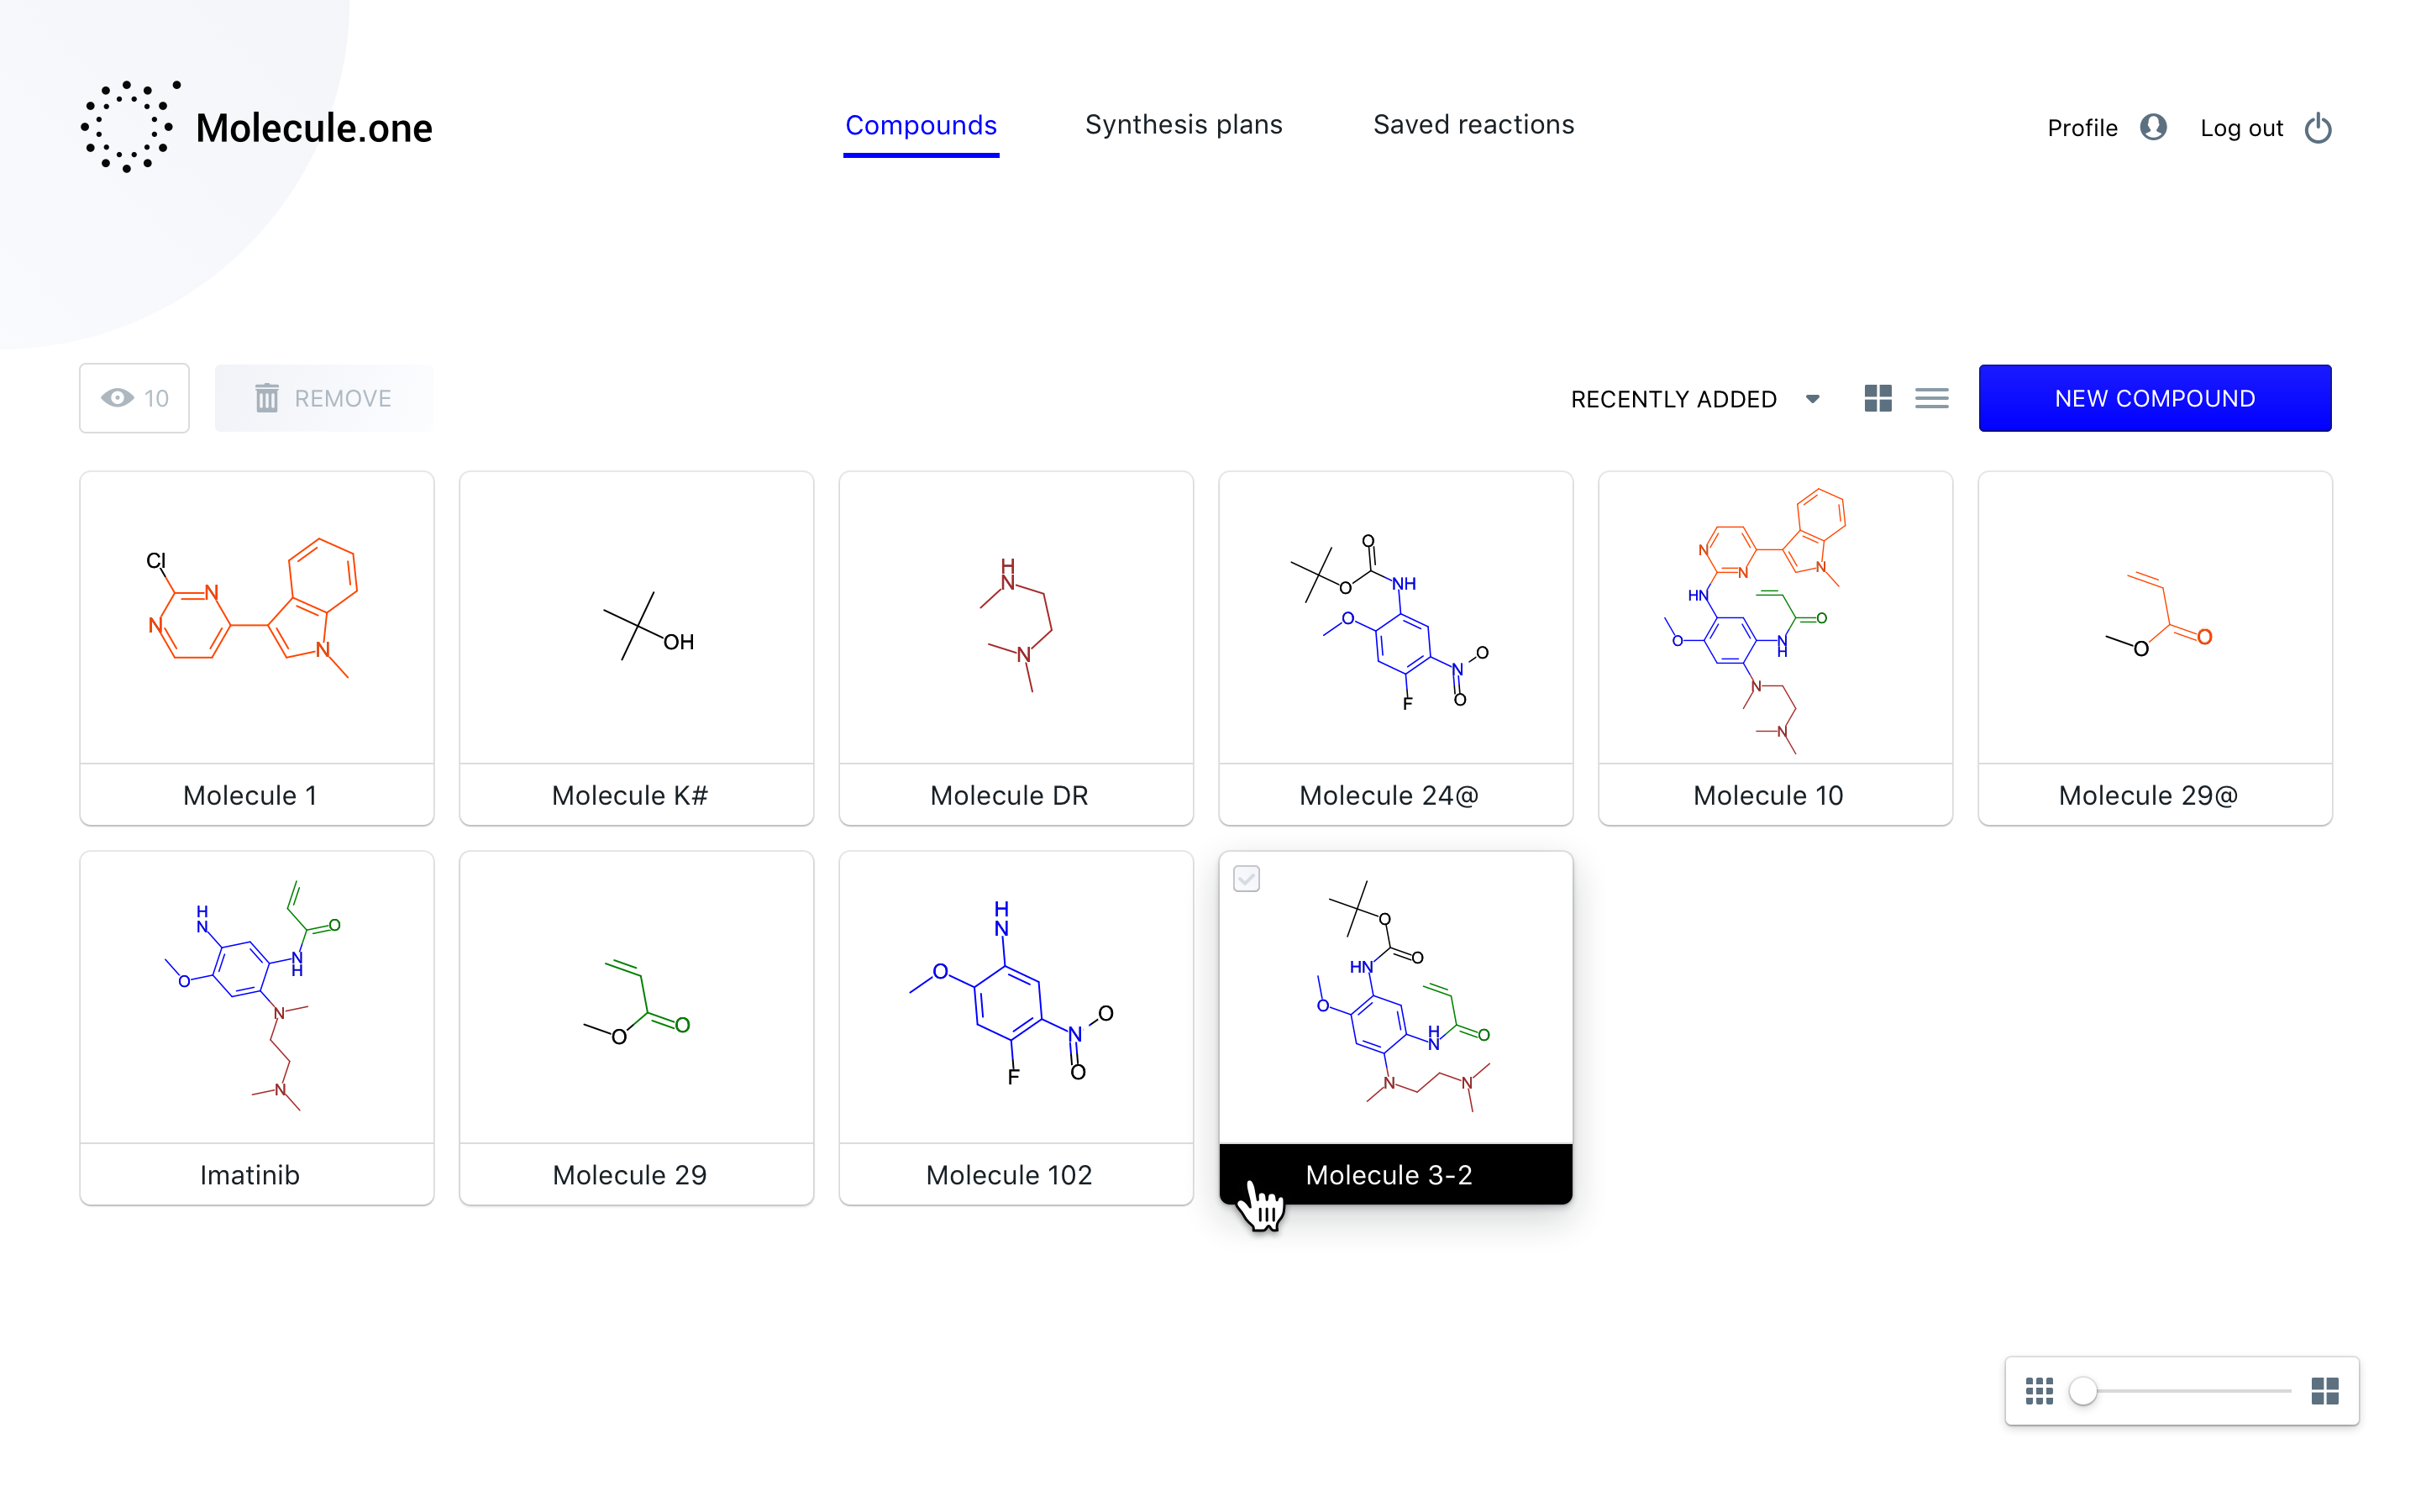 1.1.1 Molecule Dashboard Compounds